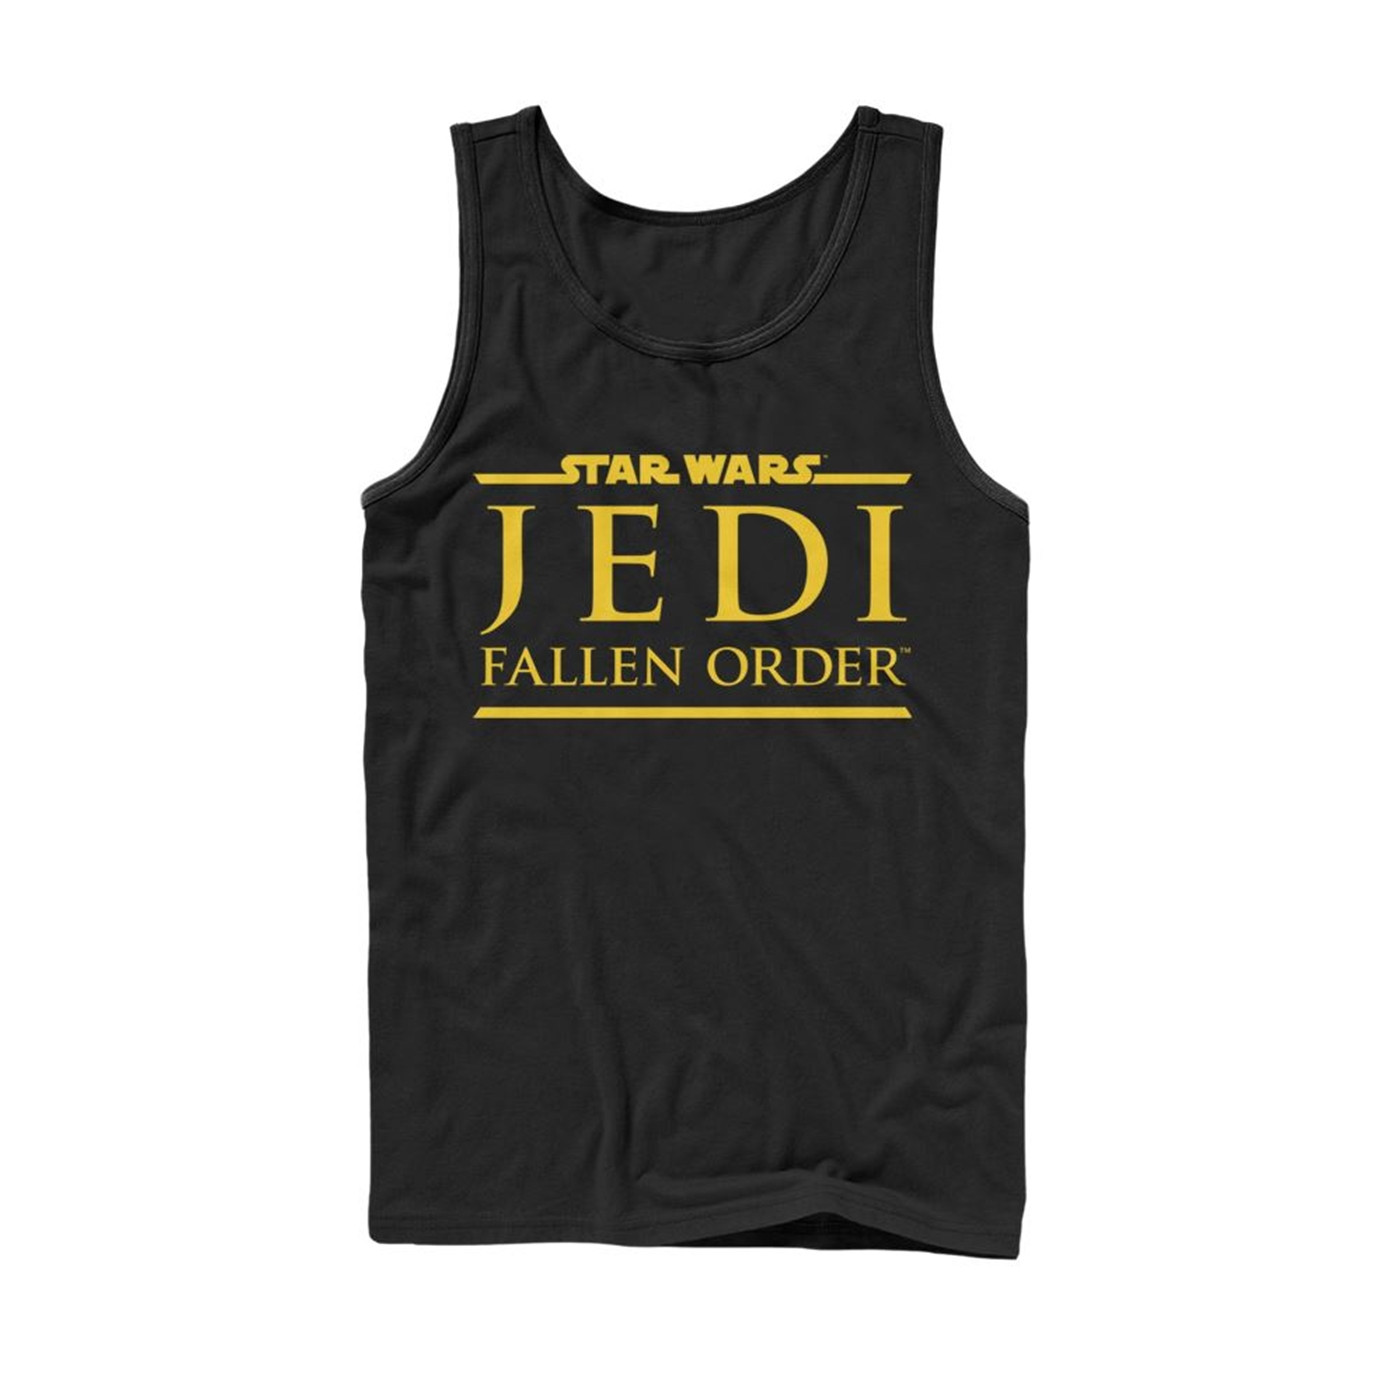 Star Wars Jedi Fallen Order Men's Tank Top